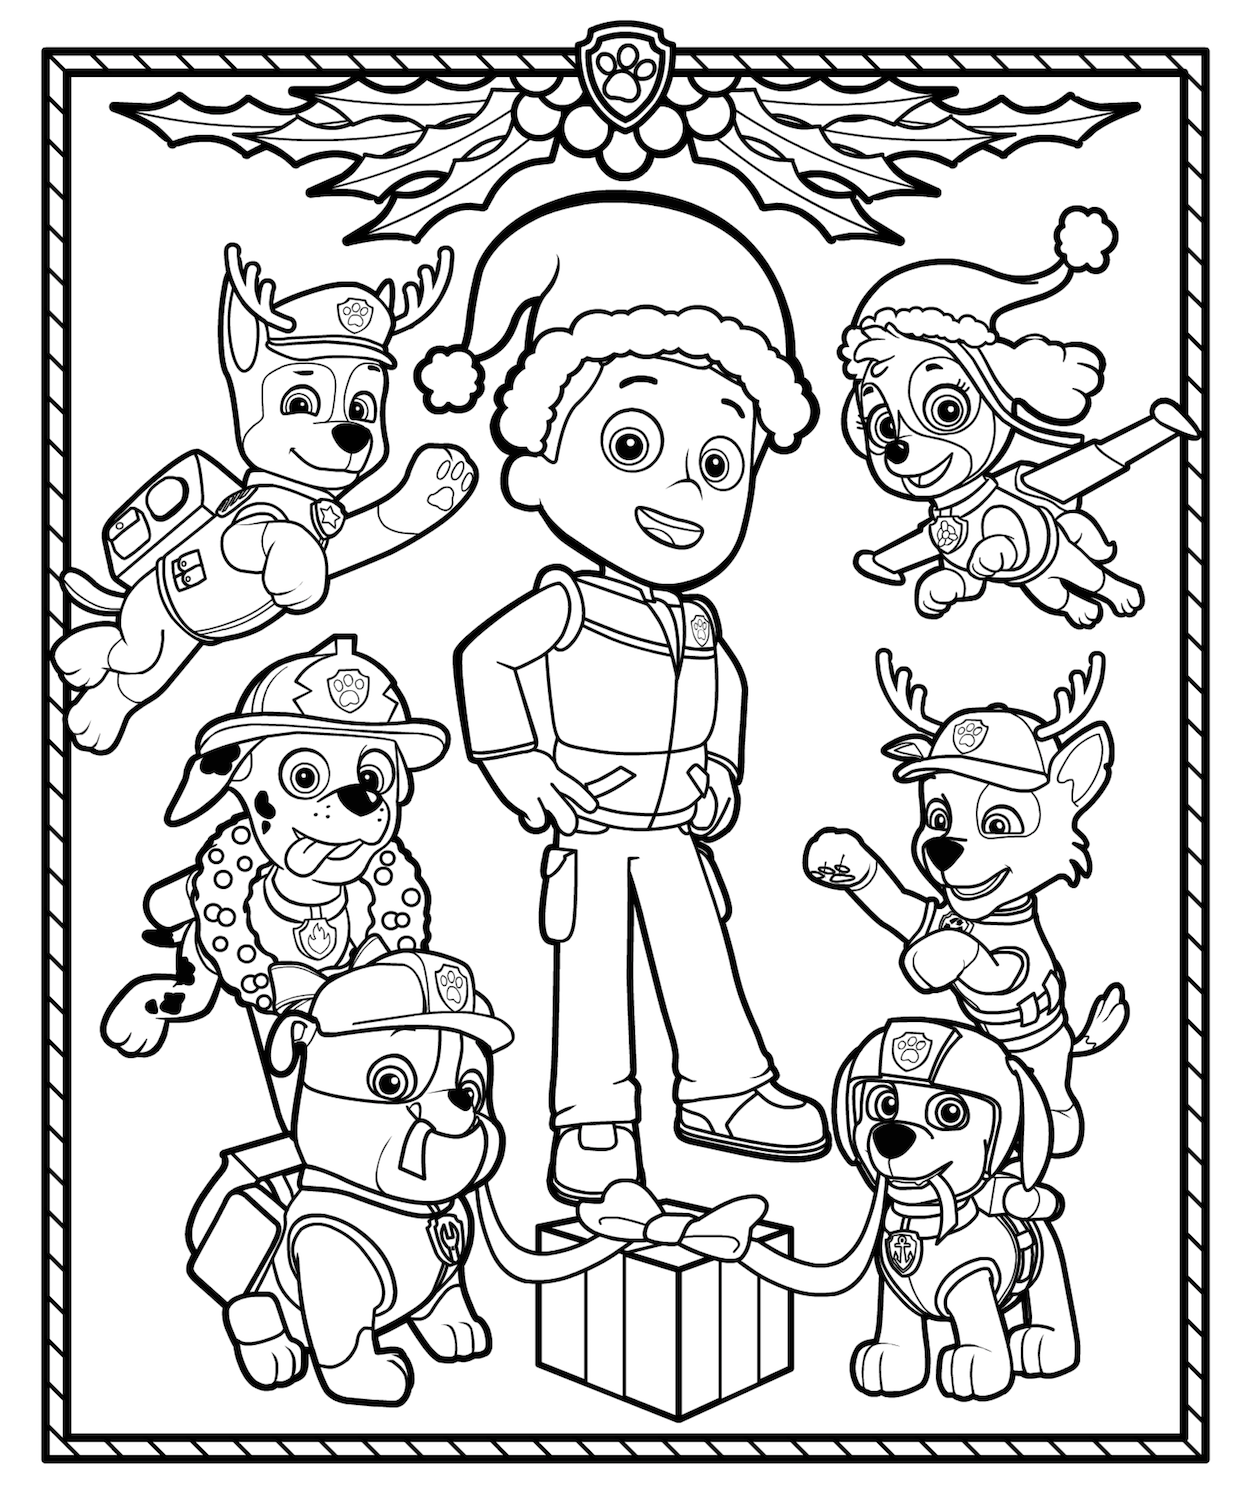 holiday coloring sheets coloring pages christmas disney gtgt disney coloring pages sheets holiday coloring